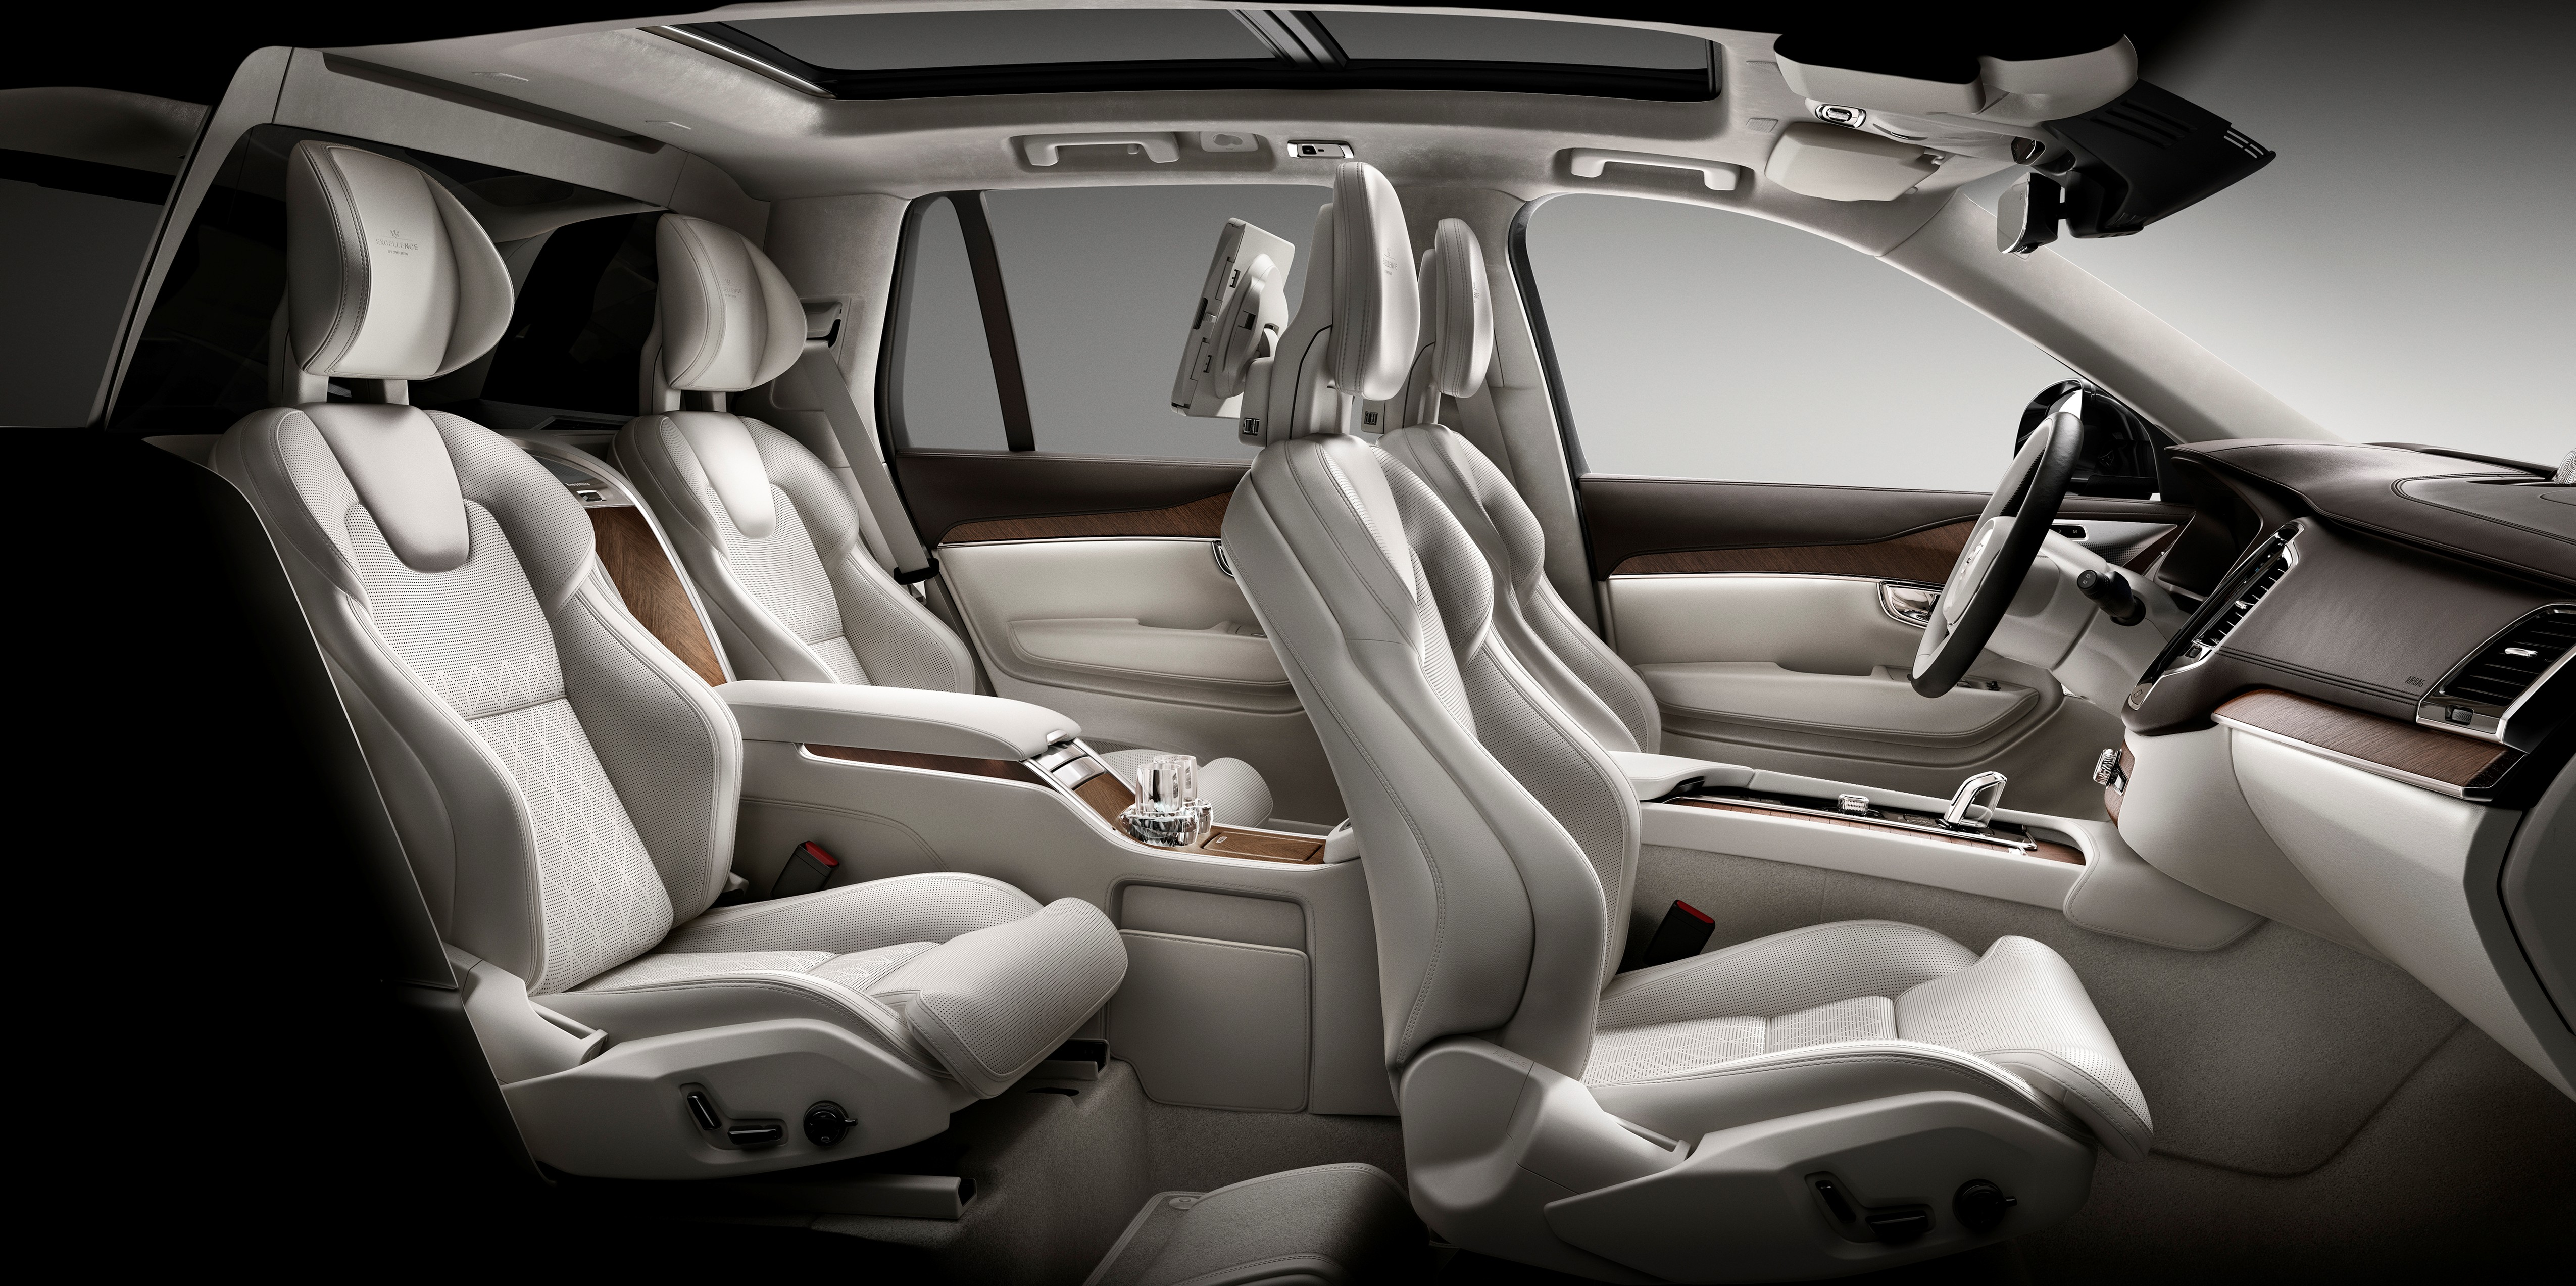 Volvo Xc90 Excellence Luxurious 4 Seat Suv Debuts Paul Tan Image